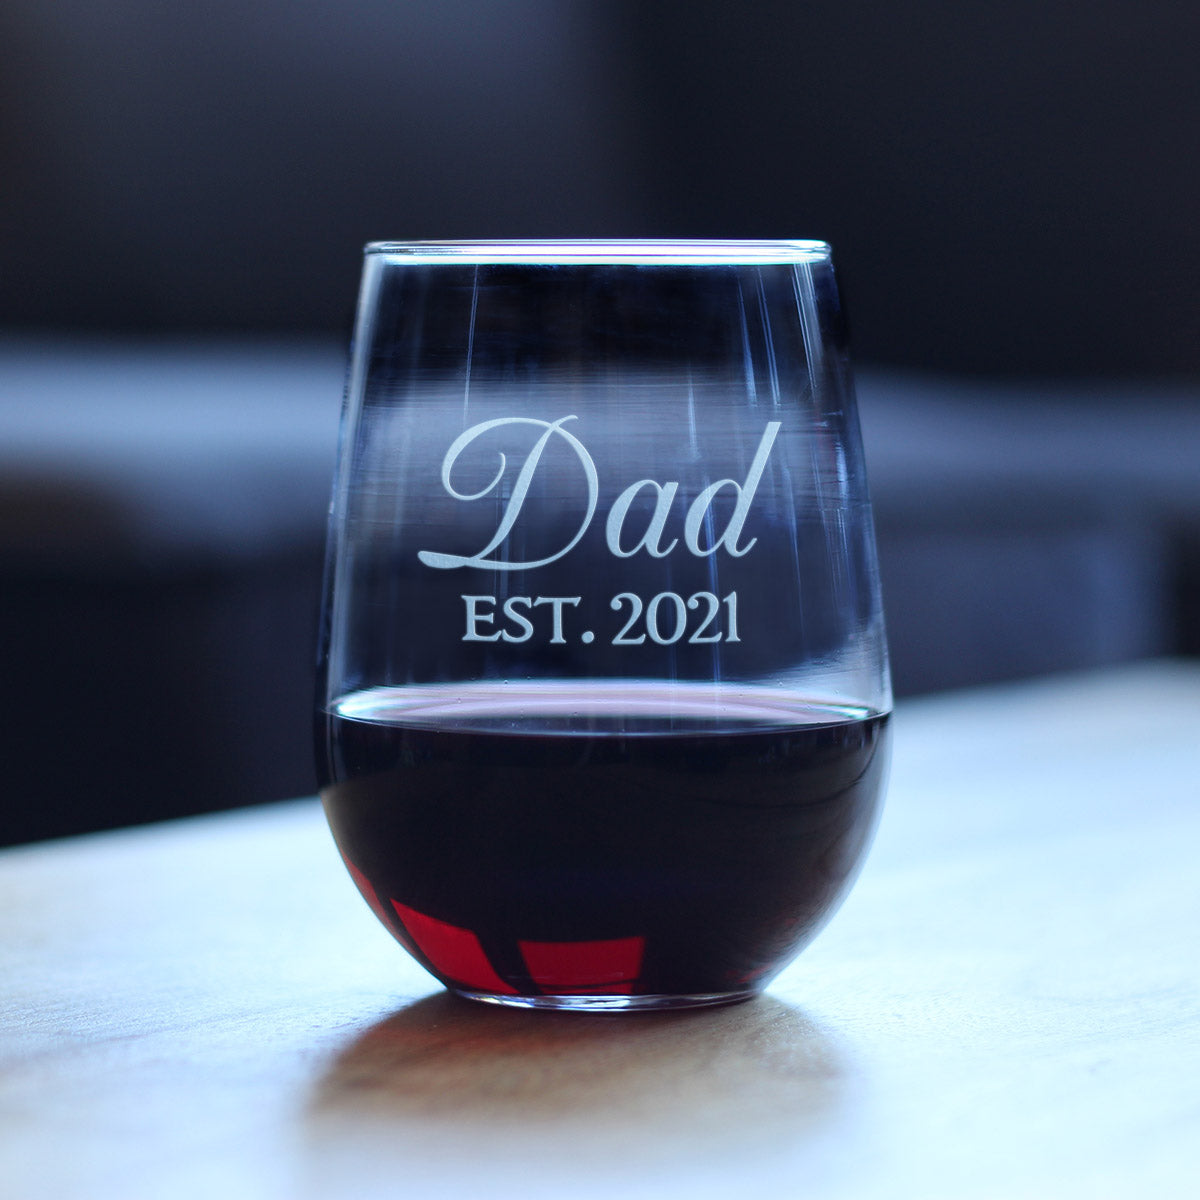 Dad Est. 2021 - 17 Ounce Stemless Wine Glass